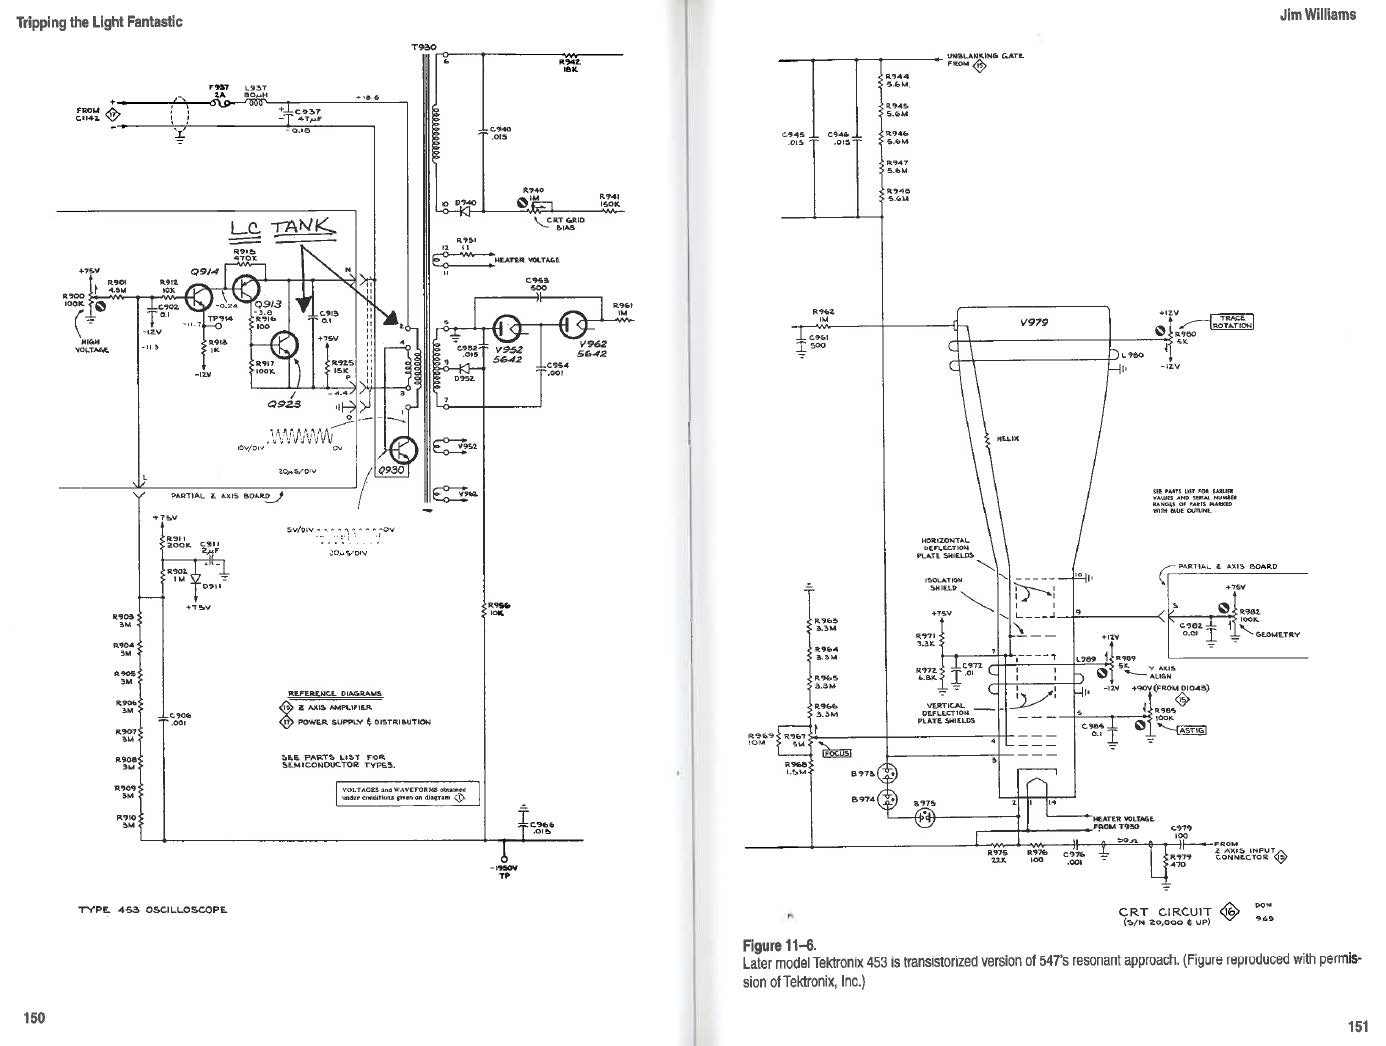 Reading Jim Williams November 2011 Circuits 8085 Projects Blog Archive Analog Oscilloscope Circuit Finally He Introduces The Royer Topology On Page 148 And Discusses Start Of His Work 152 Best Quote But There Comes This Time When Your